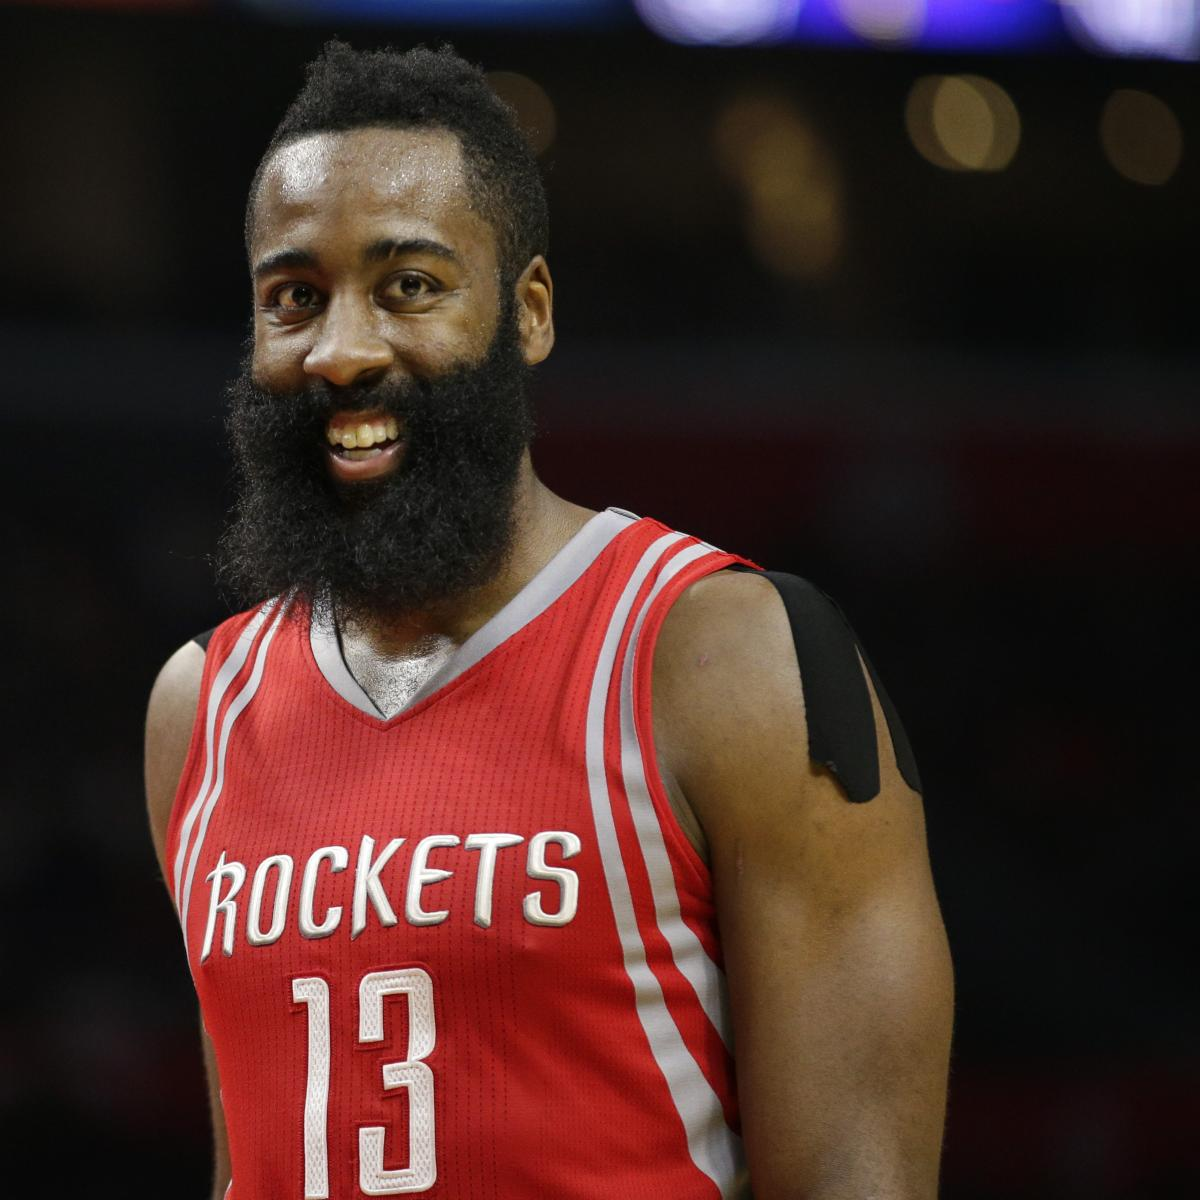 James Harden Latest News: James Harden's Style Of Play, Personality Reportedly